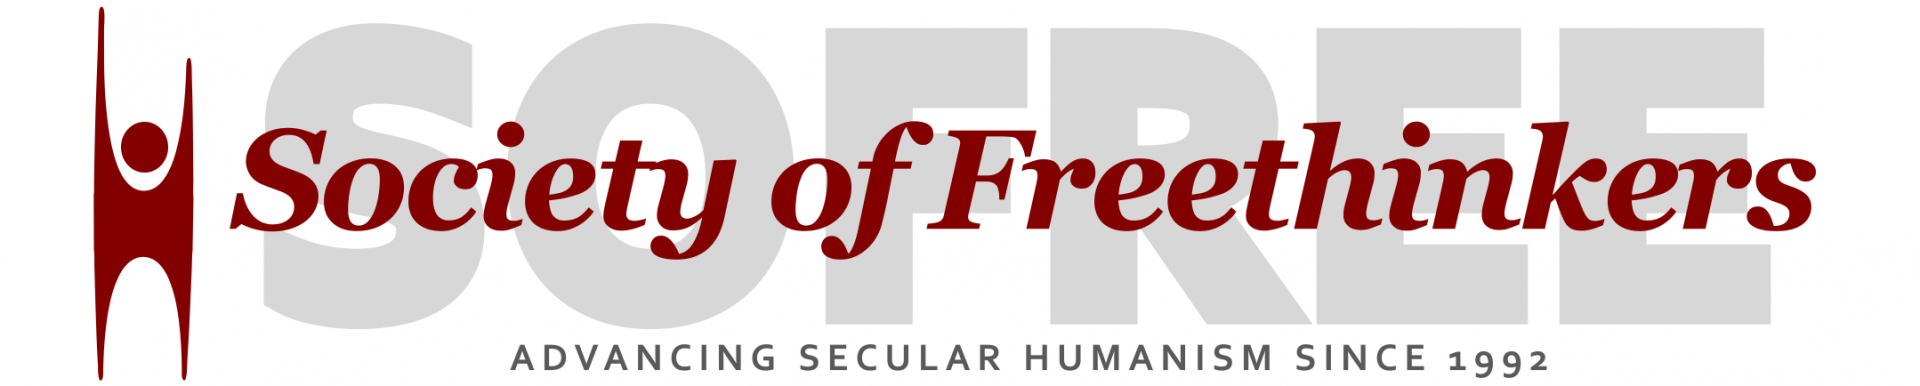 Society of Freethinkers